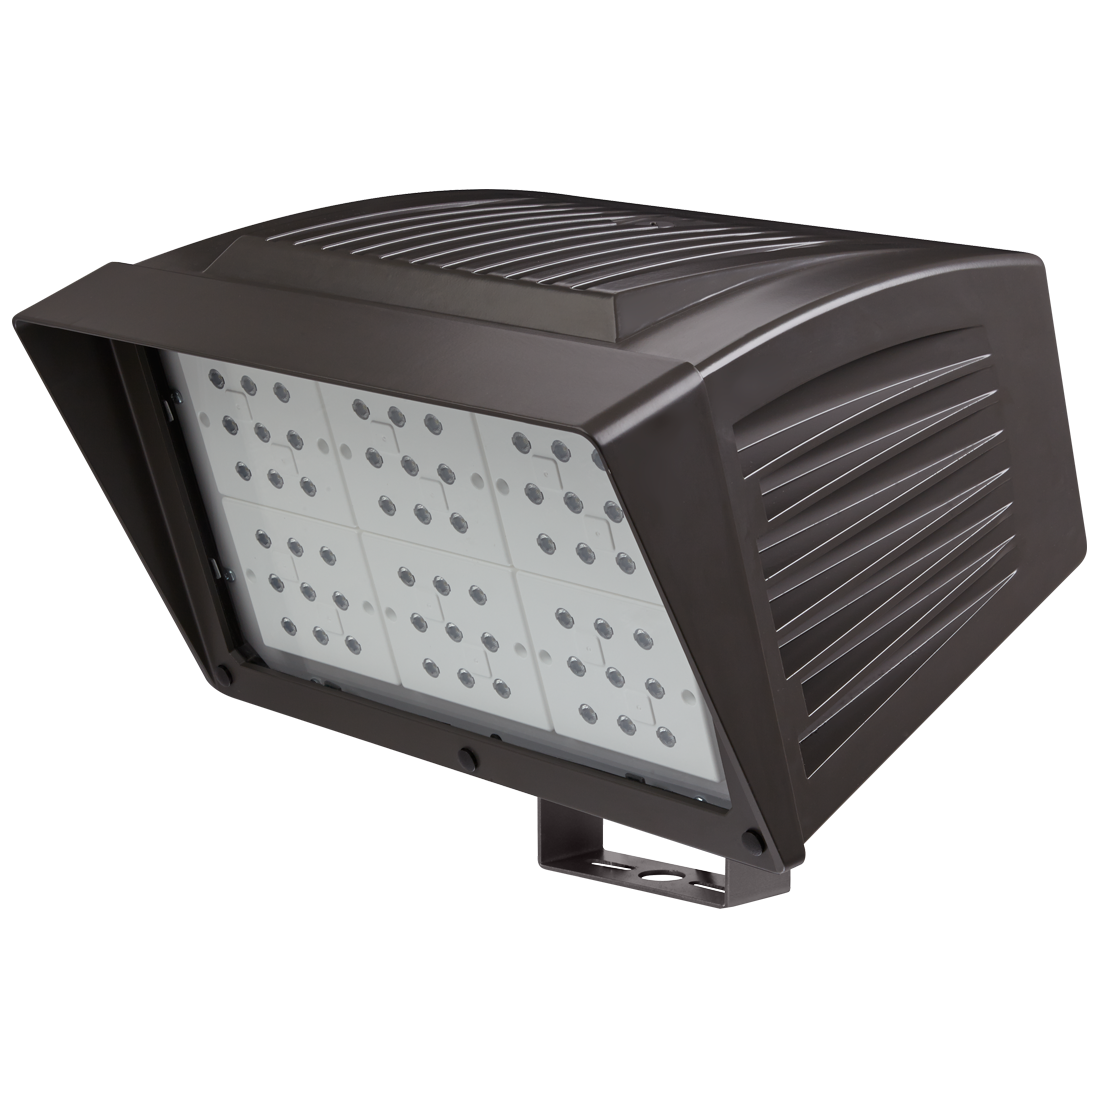 Atlas Lighting PFXL162LEDS4 ATL PFXL162LEDS4